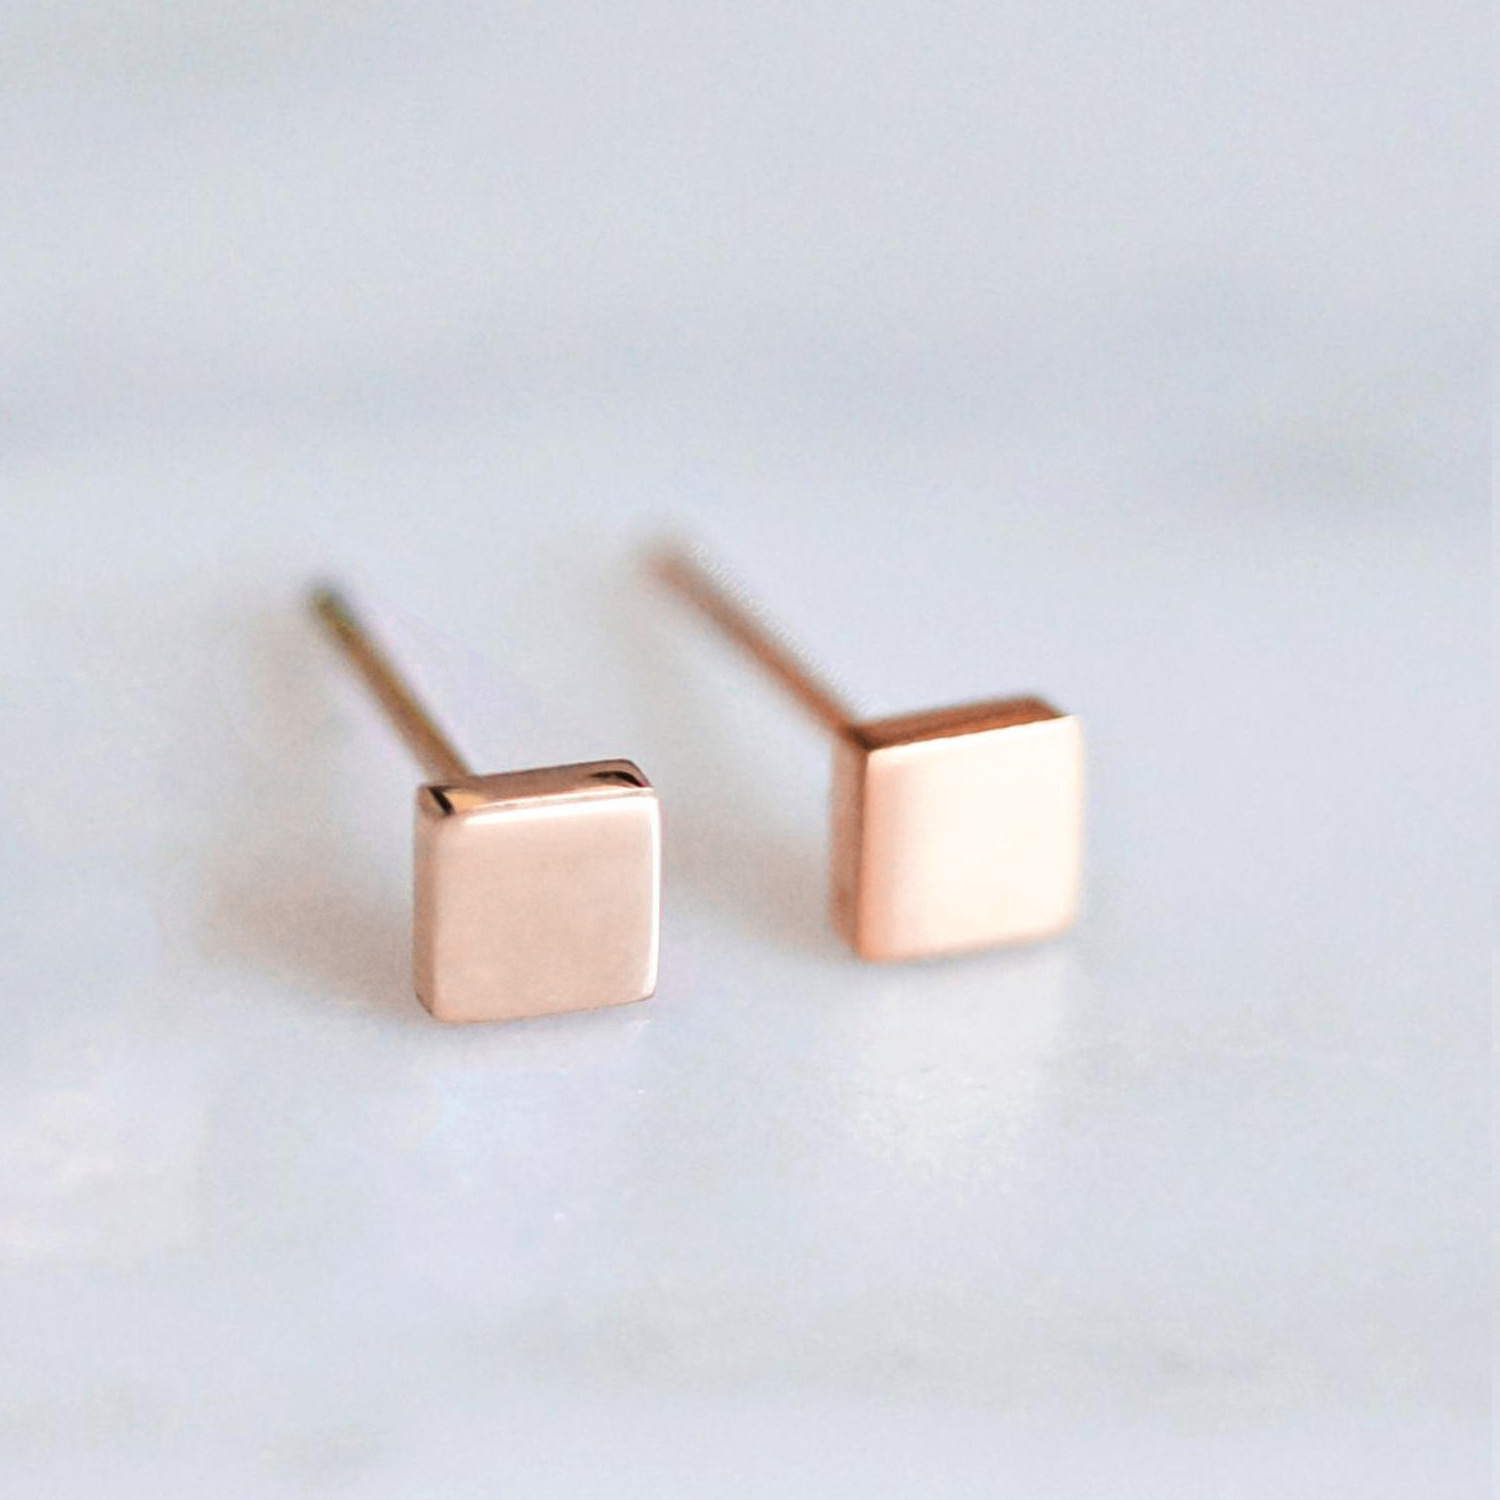 New fashion titanium steel earrings 316 stainless steel simple earrings yiwu nihaojewelry wholesale NHUI208222